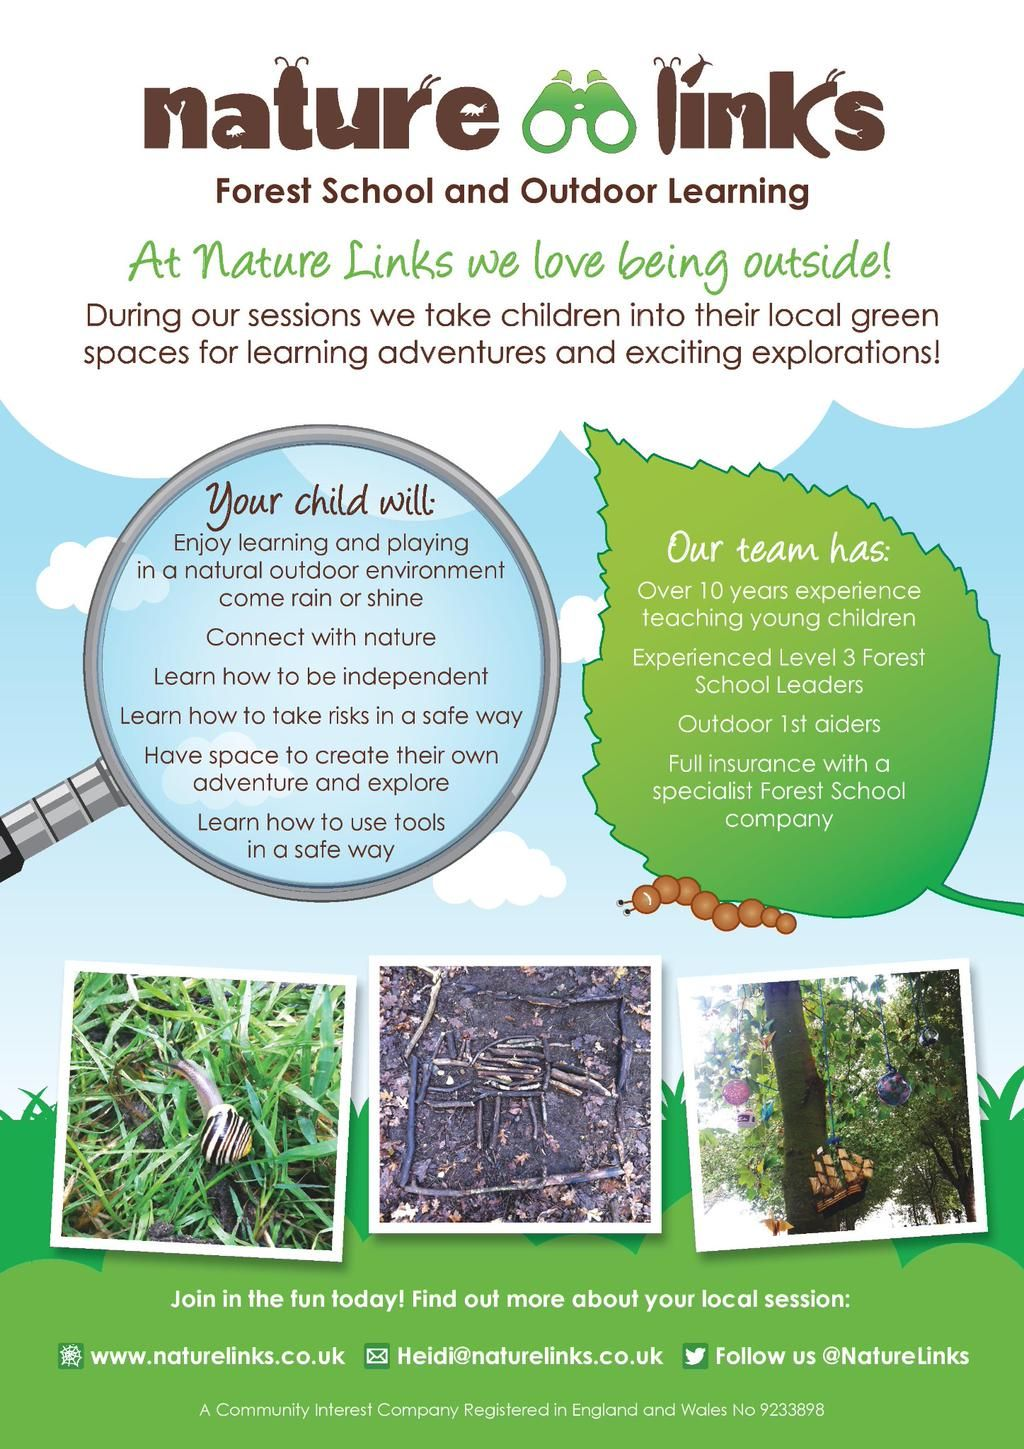 Nature Links On Outdoor Learning Kids Health Forest School